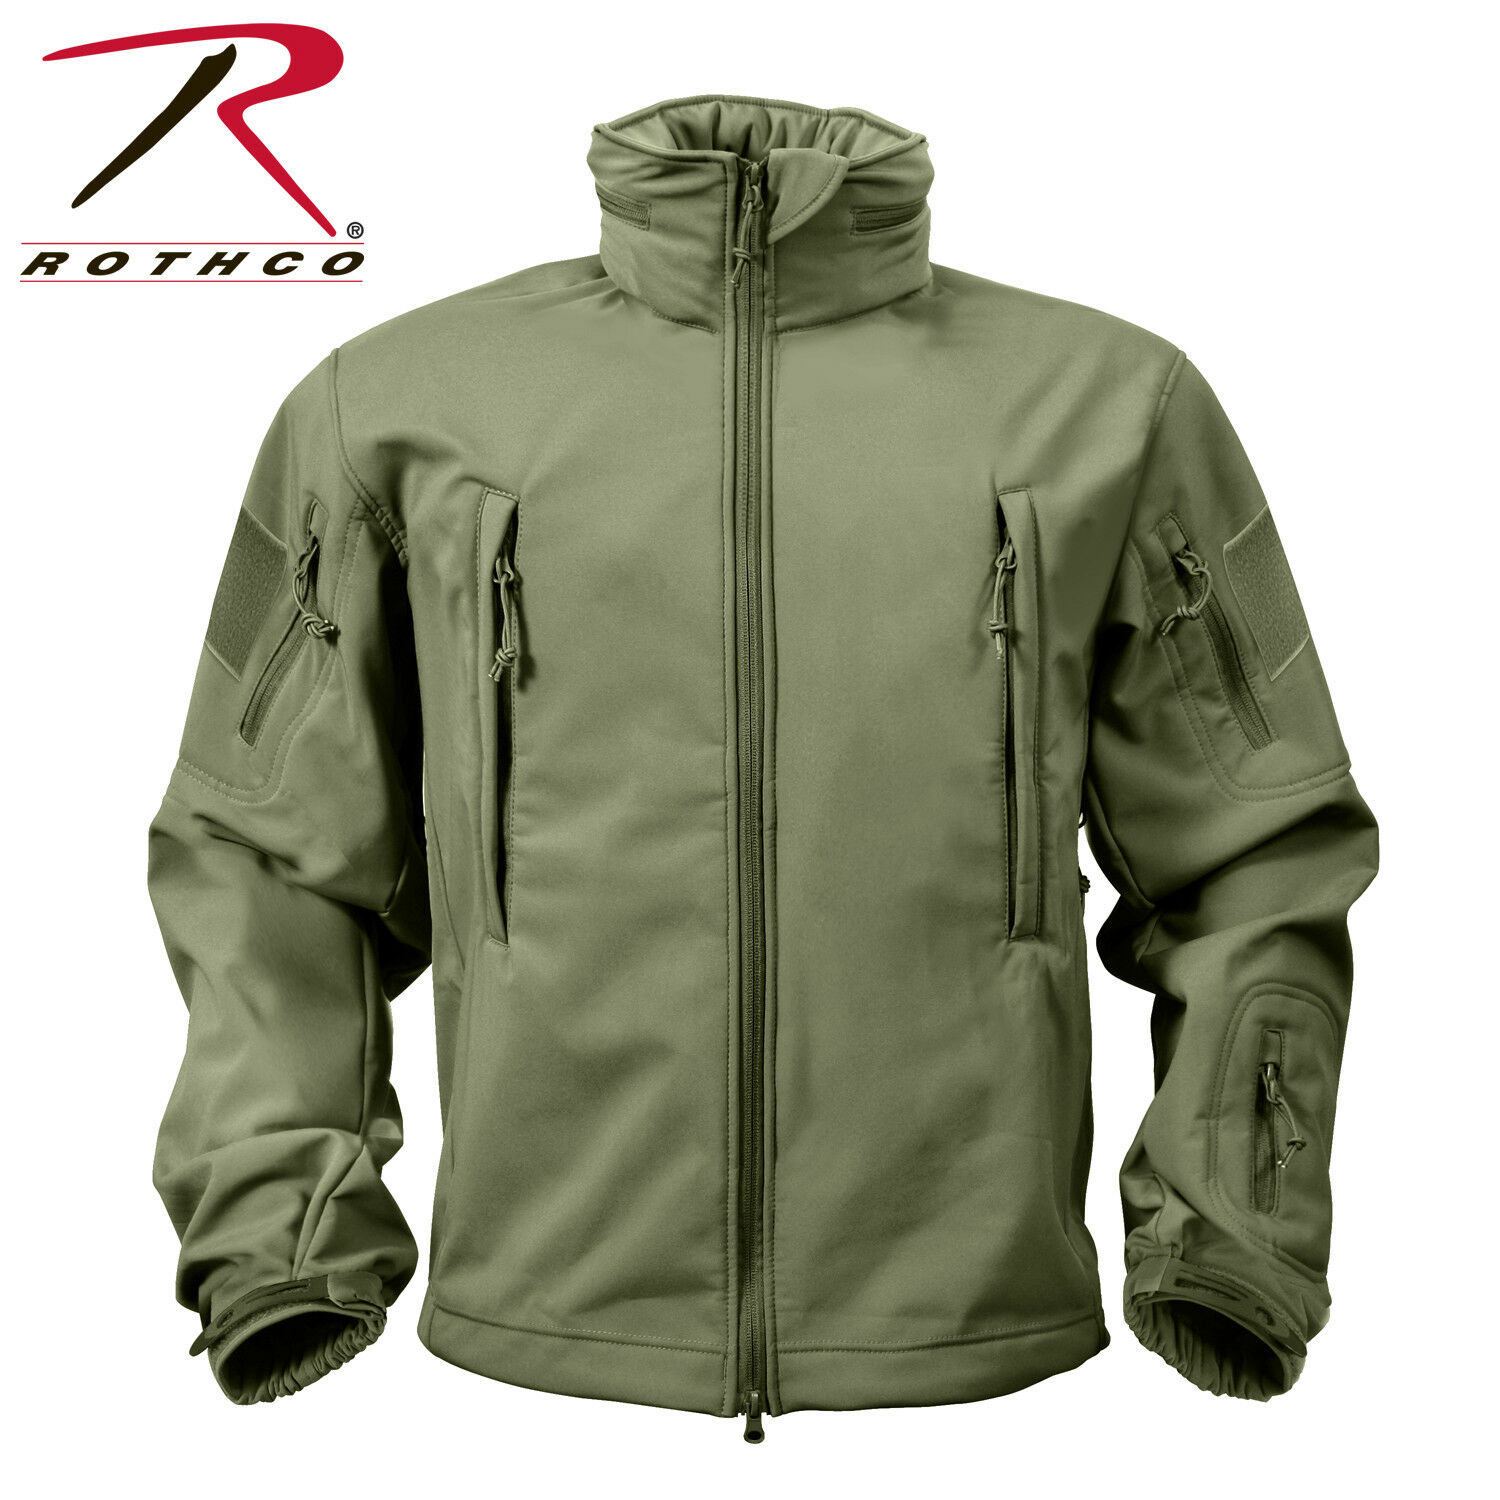 rojohco us Special Spec Ops Army Tactical Fleece Softshell chaqueta Olive Drab